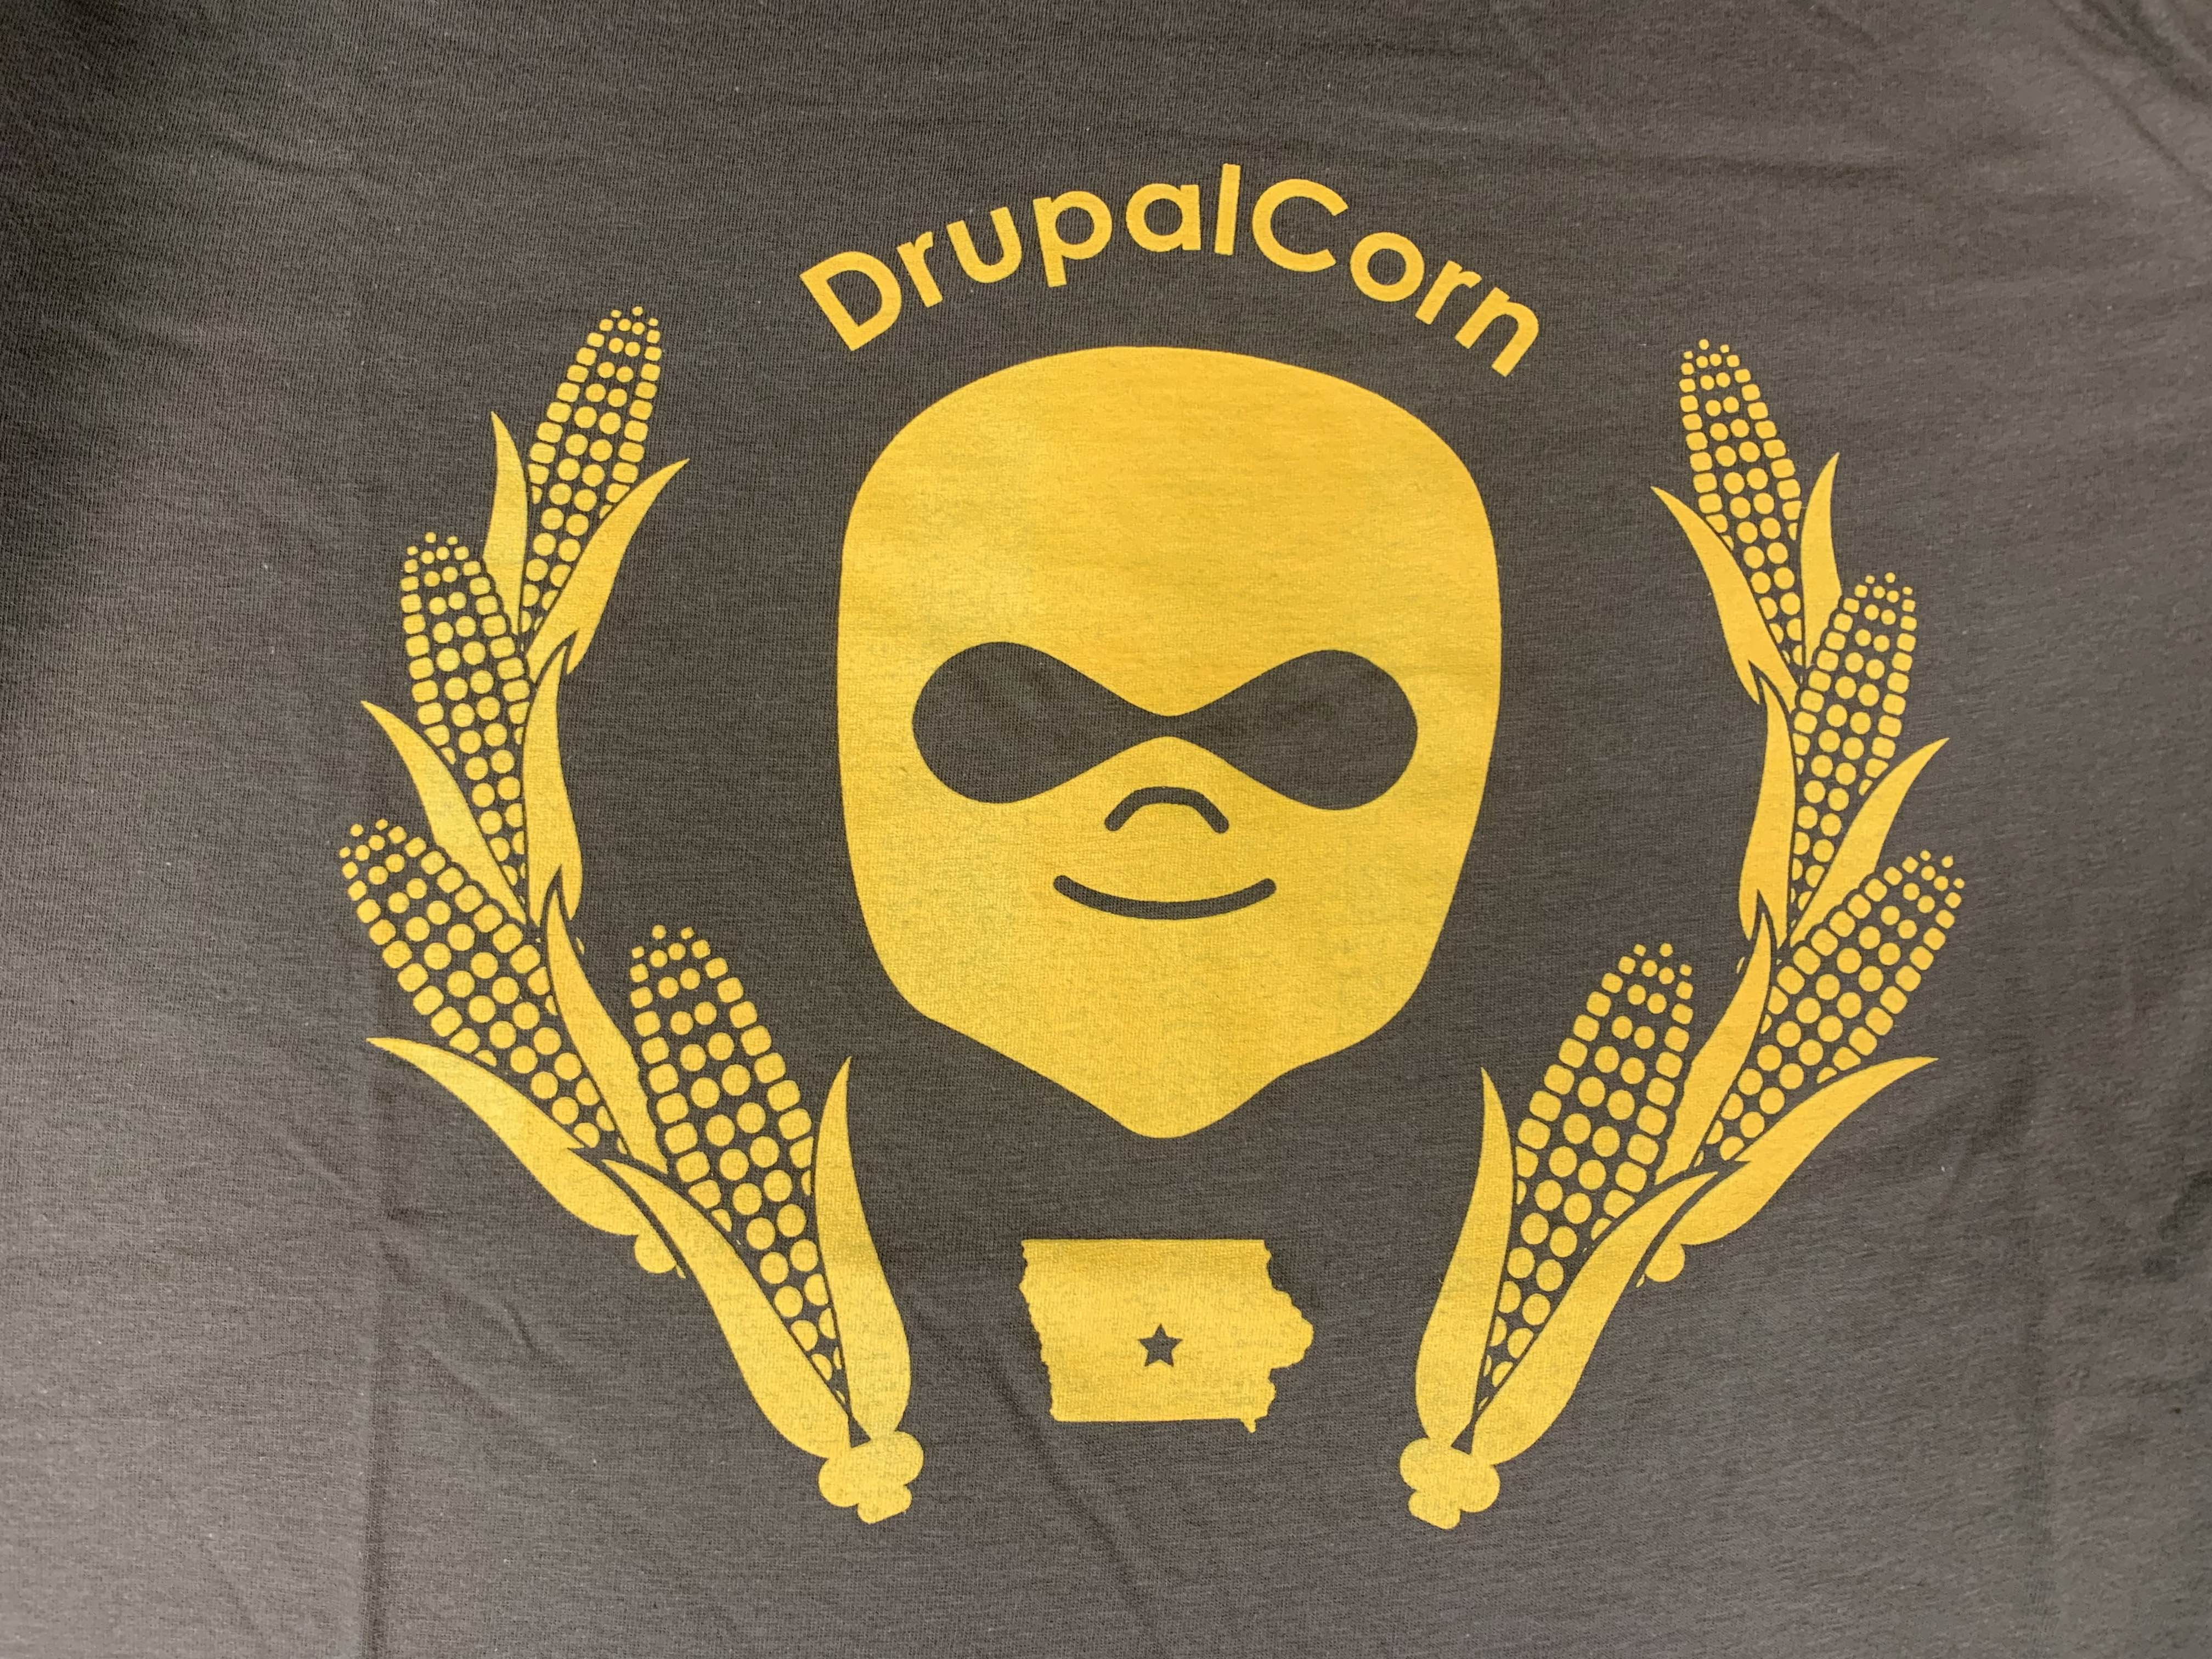 2018 DrupalCorn Shirt - Brown with yellow lines.